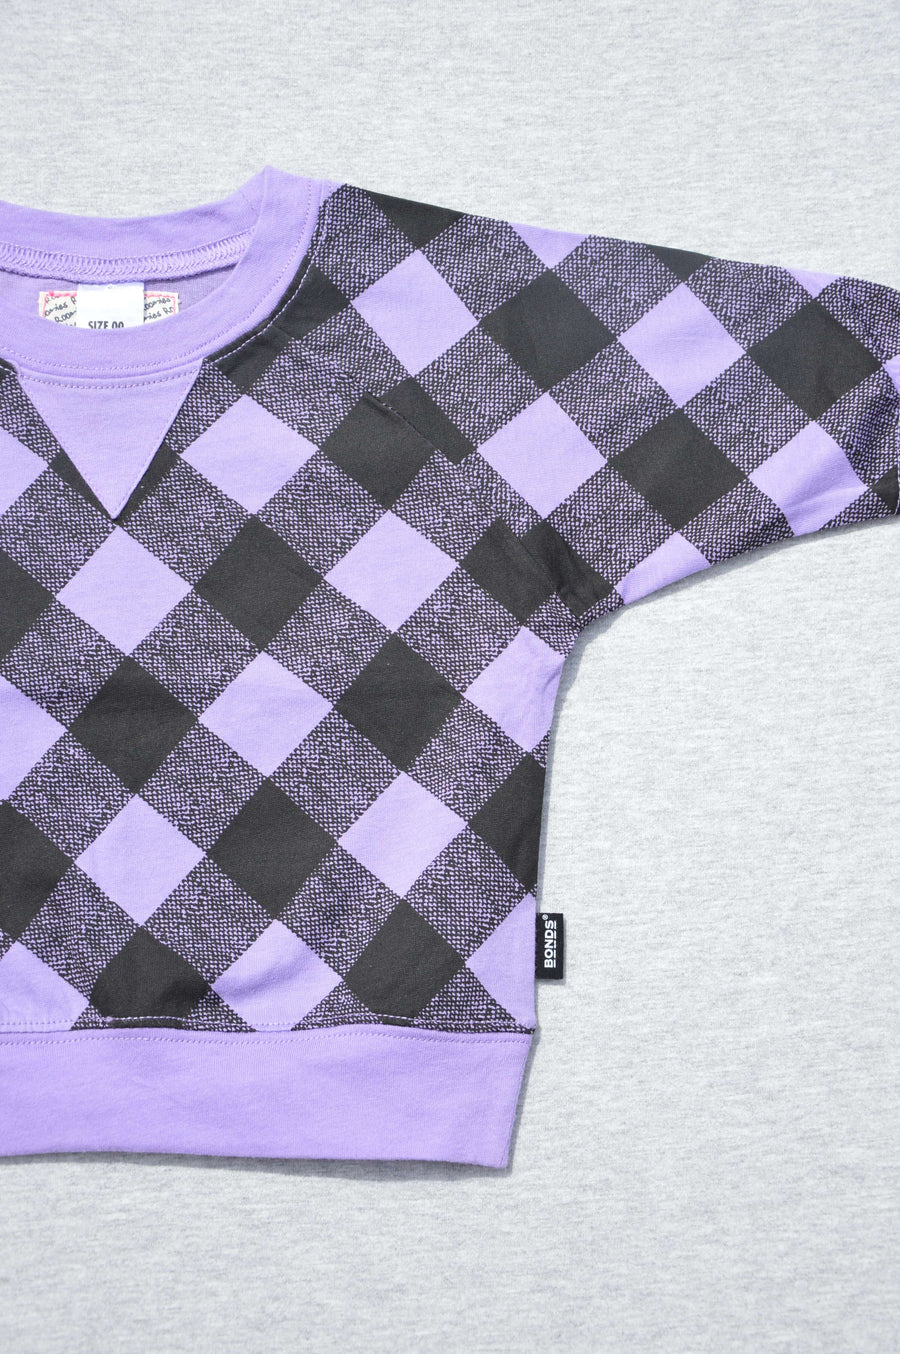 Bonds - nearly new - purple & black batwing lightweight top, size 3-6m